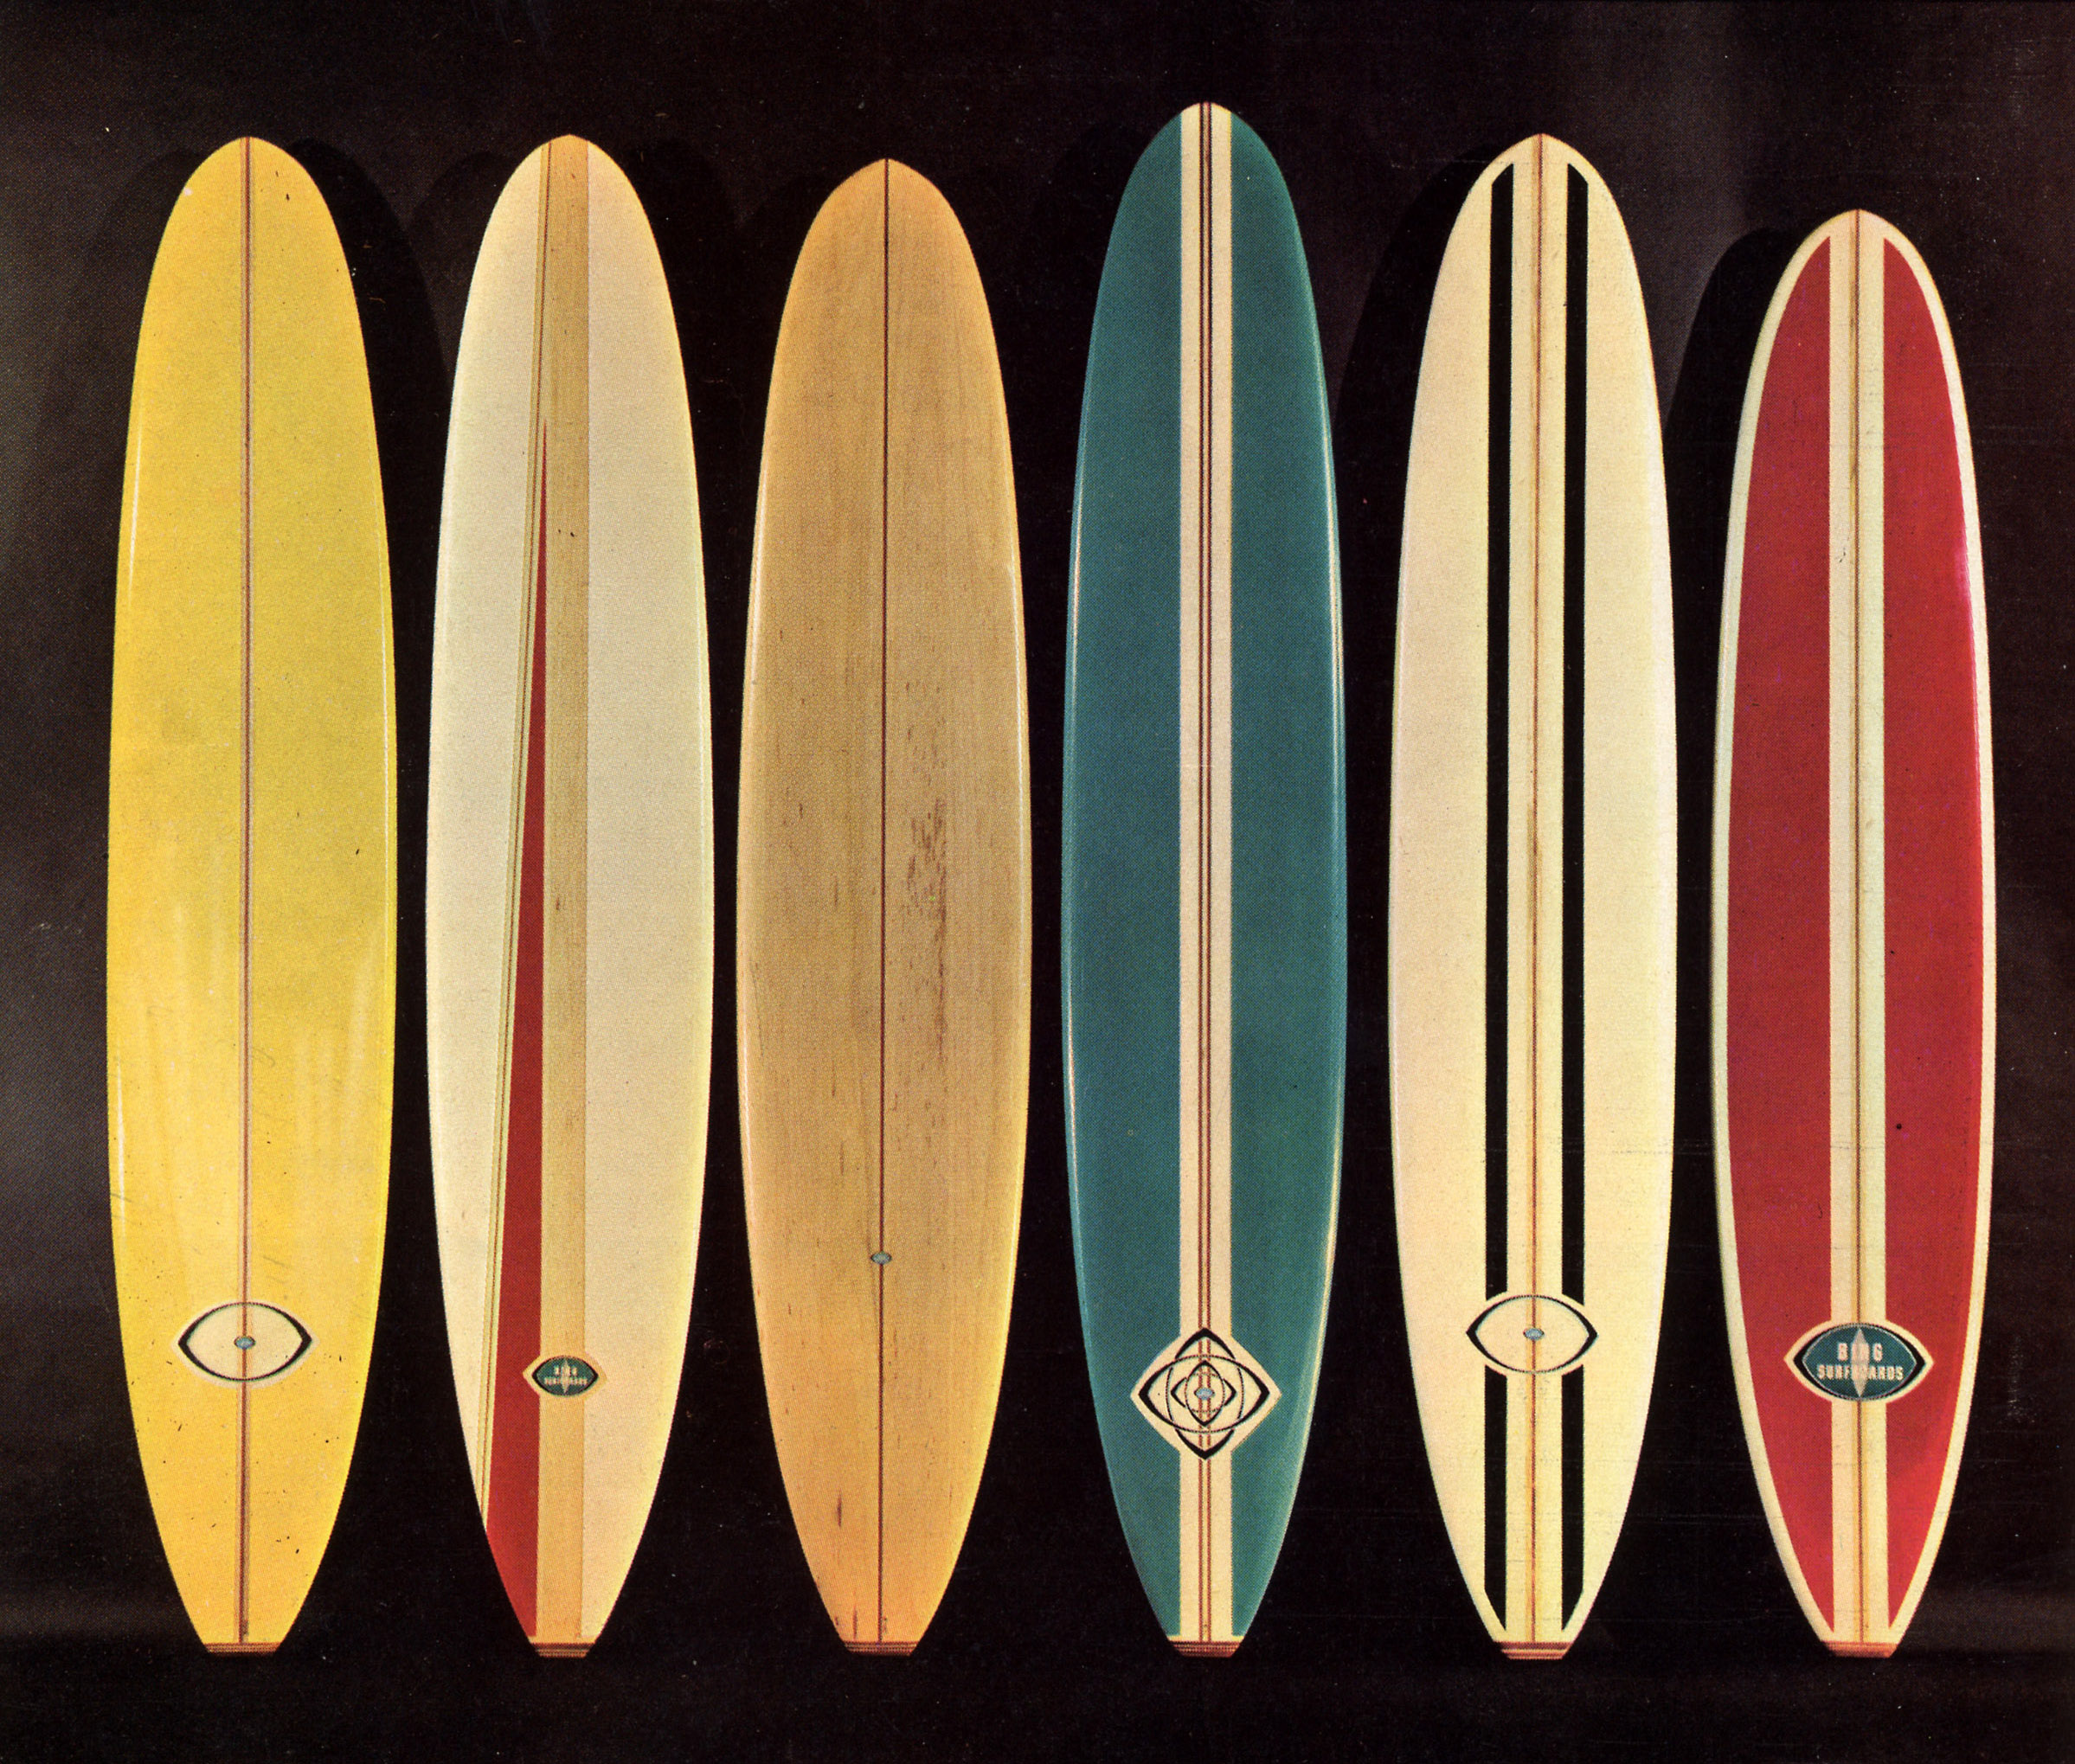 Free Vintage Surfboard Cliparts, Download Free Clip Art.